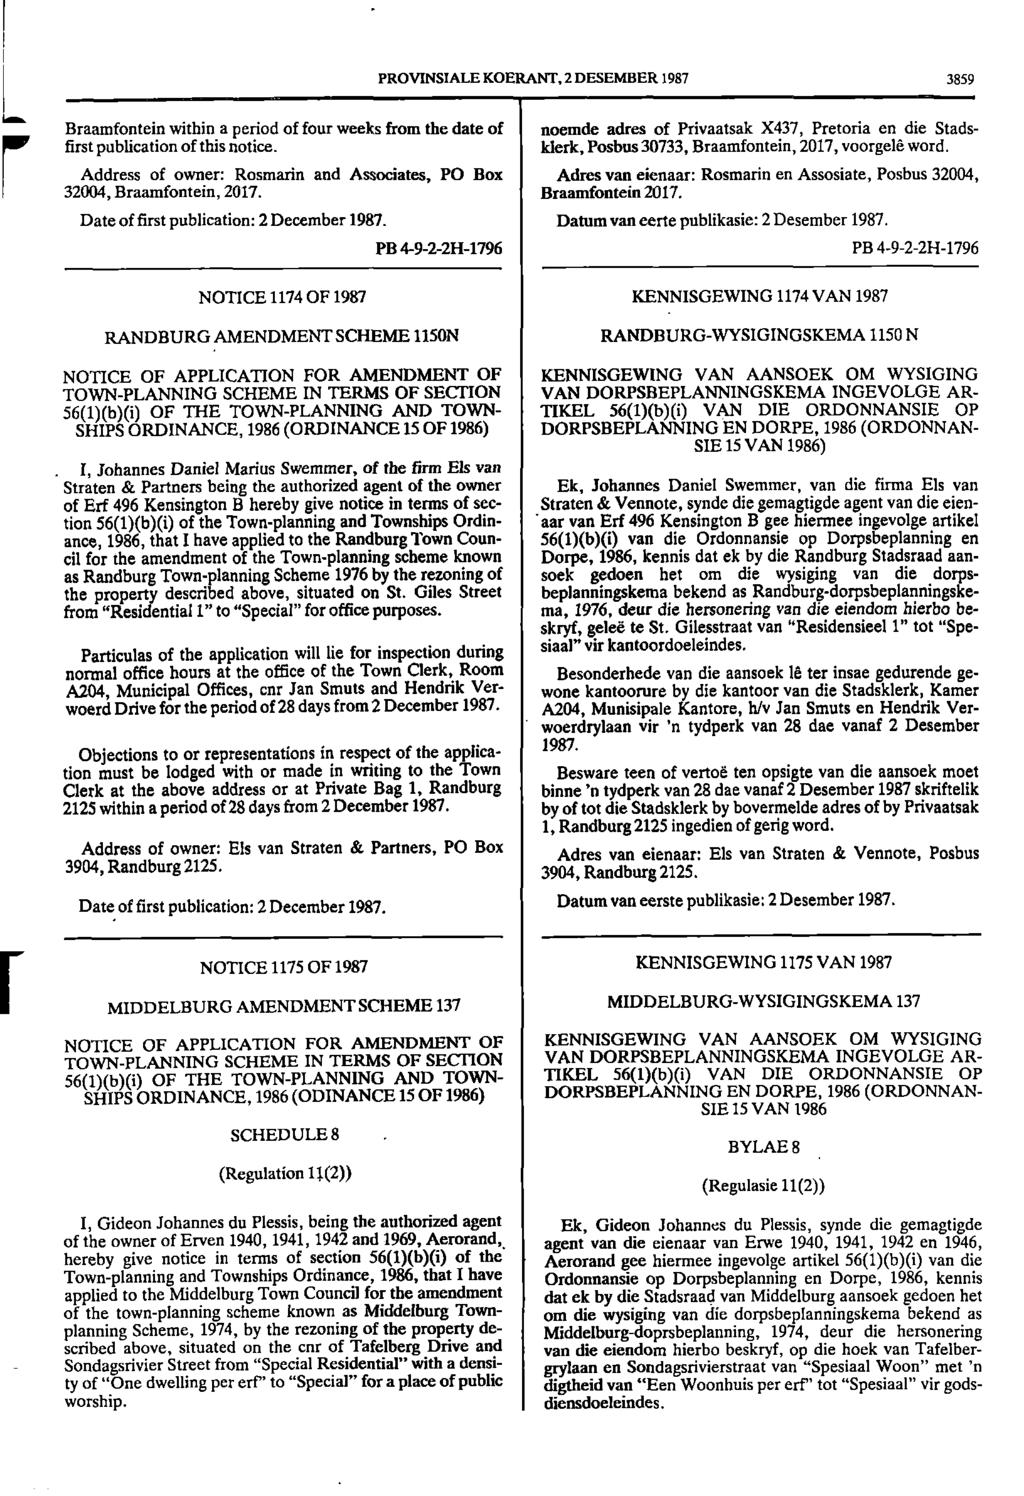 1 PROVINSIALE KOERANT, 2 DESEMBER 1987 3859 1... Braamfontein within a period of four weeks from the date of noemde adres of Privaatsak X437, Pretoria en die Stads 7 first publication of this notice.